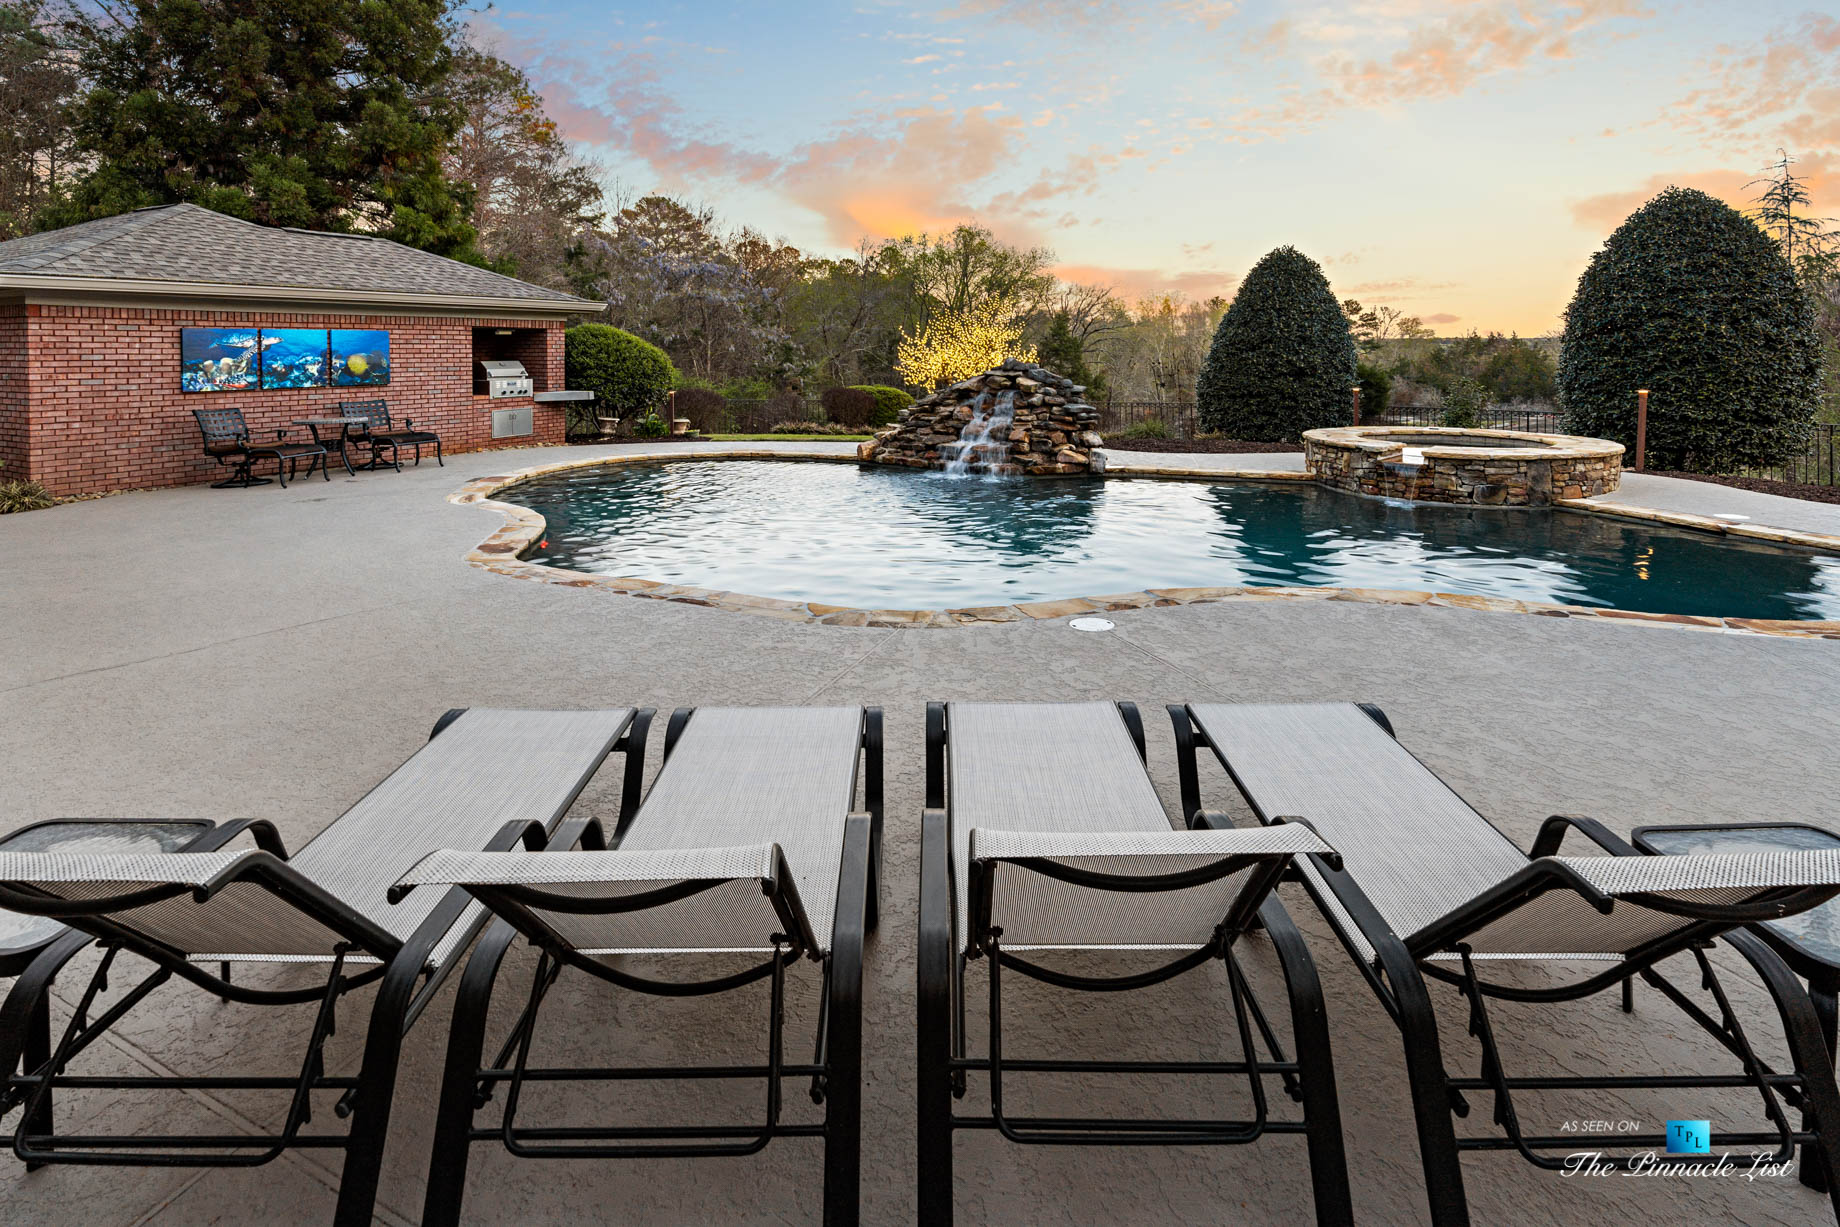 2219 Costley Mill Rd NE, Conyers, GA, USA - Lounge Chairs on Pool Deck - Luxury Real Estate - Equestrian Country Home